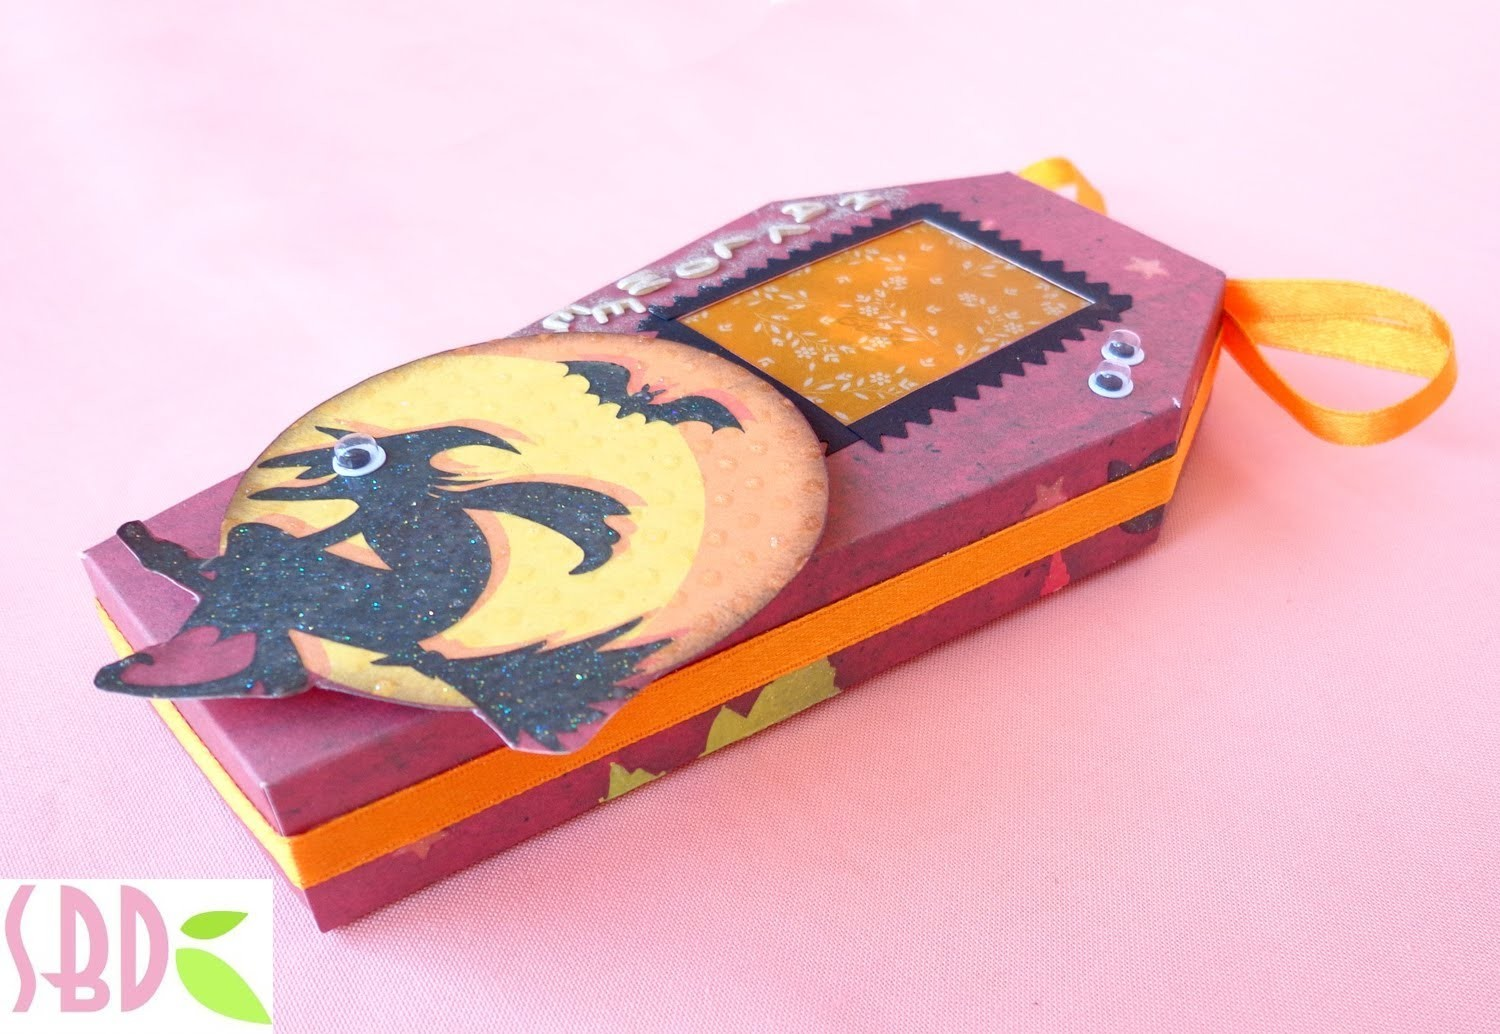 Scrapbooking: Scatola Bara porta dolcetti - Coffin box Sweets holder